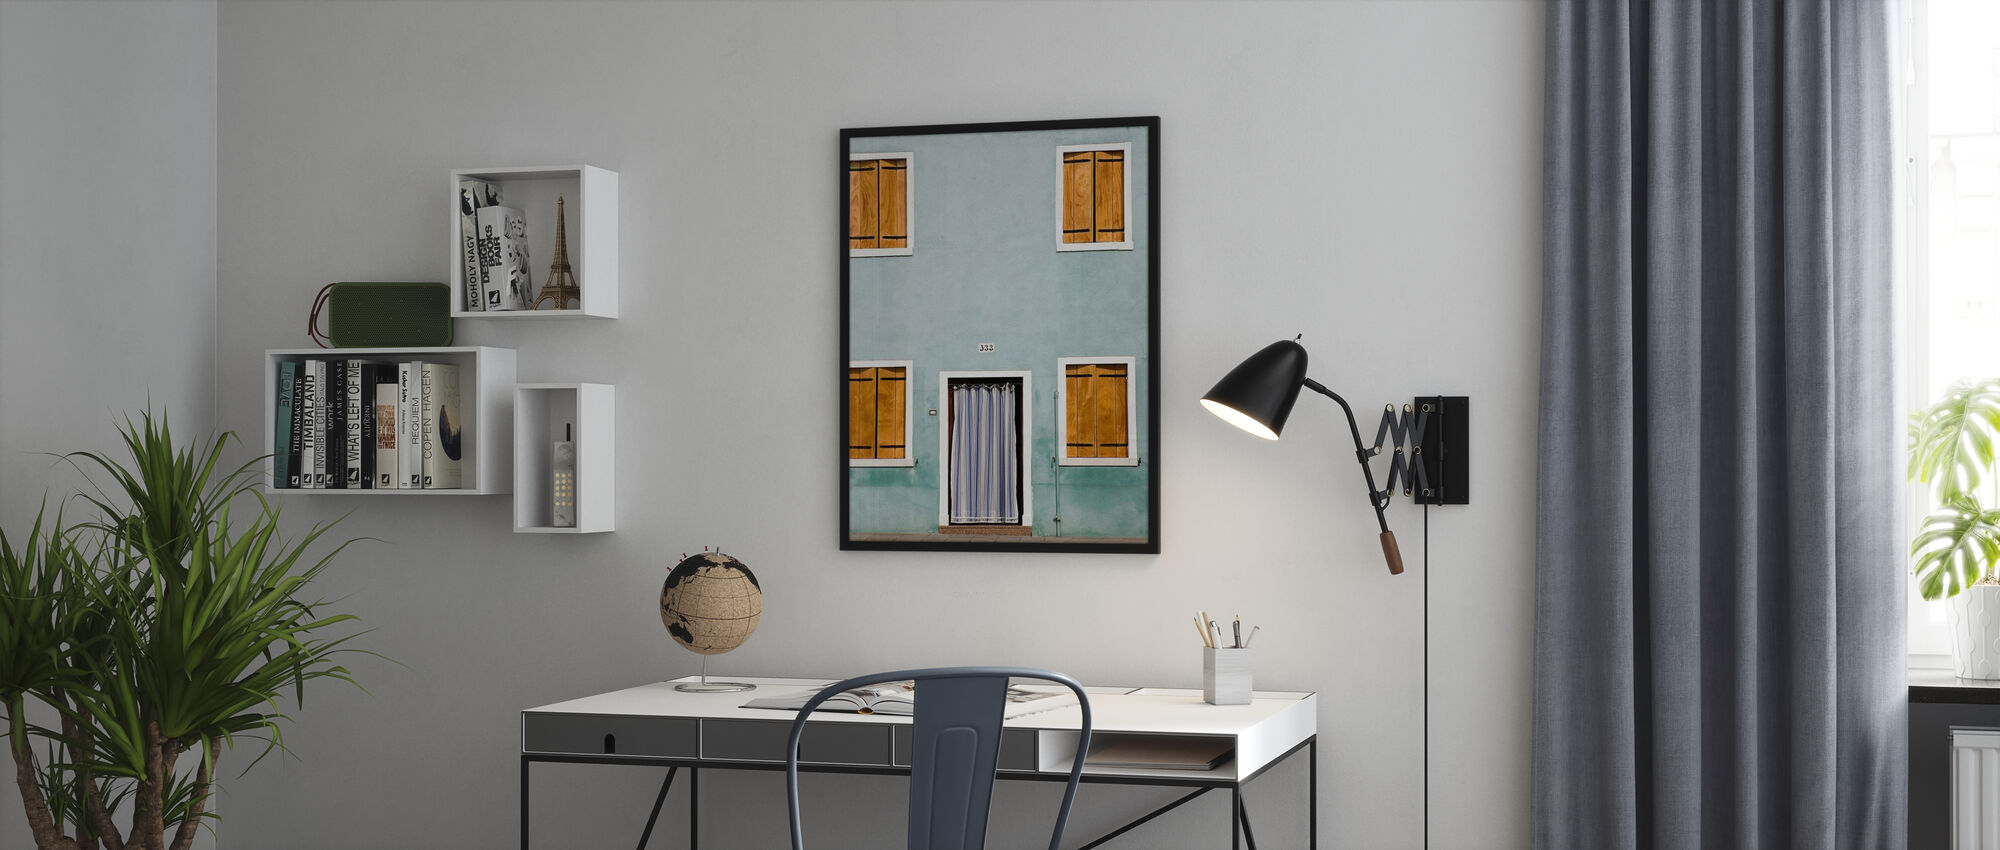 Facade with Closed Shutters - Poster - Office